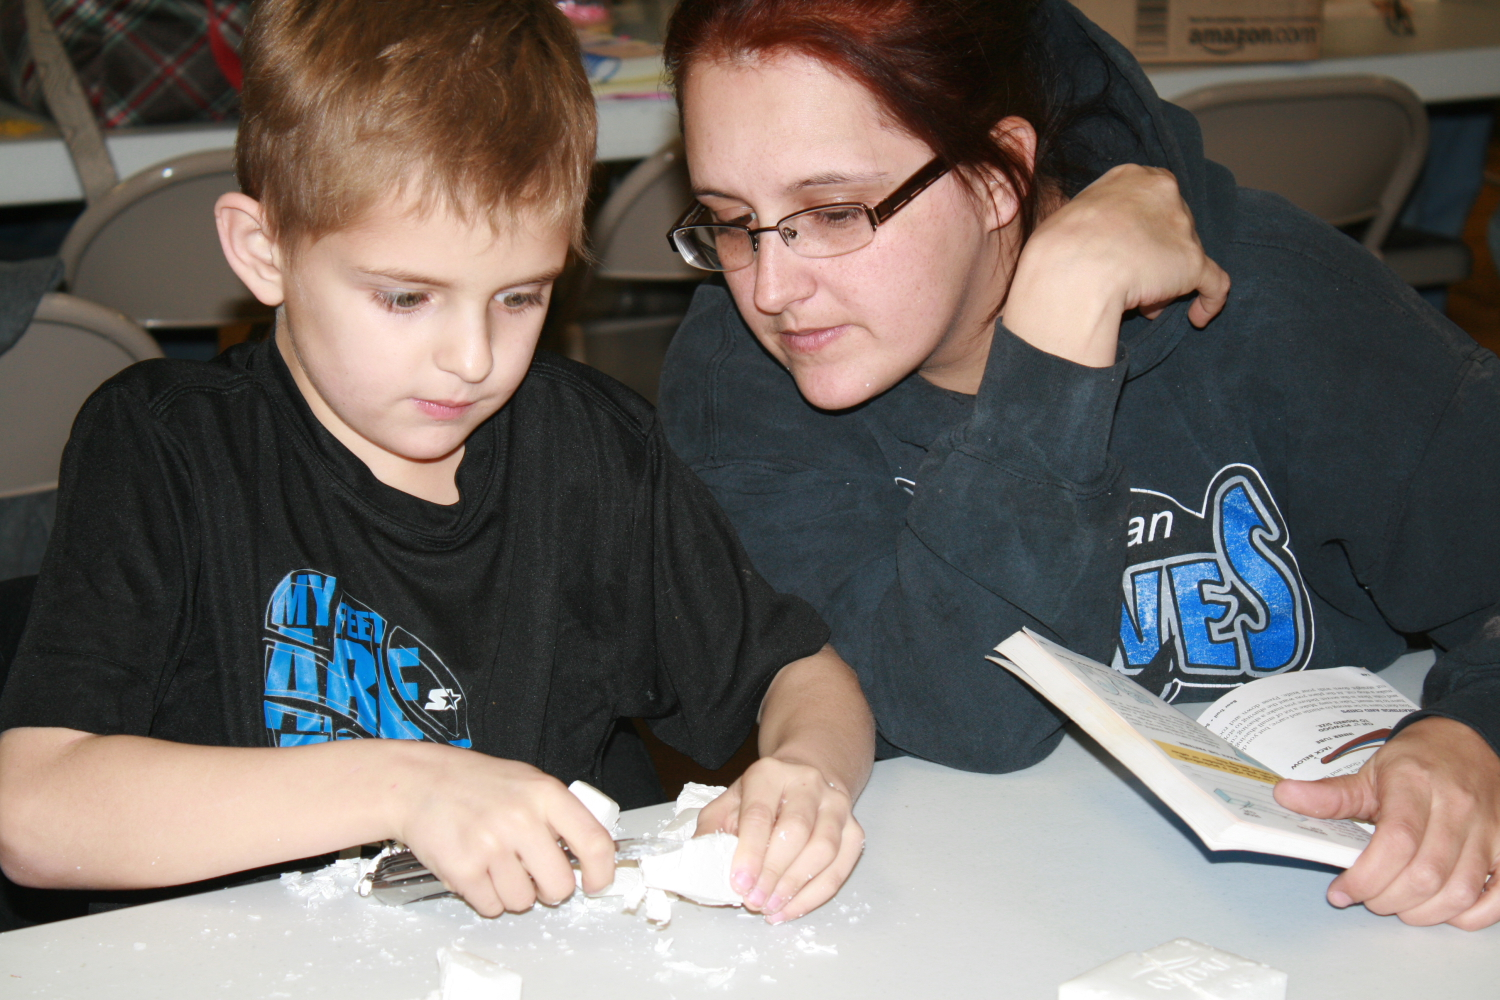 Exeter Cub Scout Blake Meyer and his mother, Heather Meyer, working on